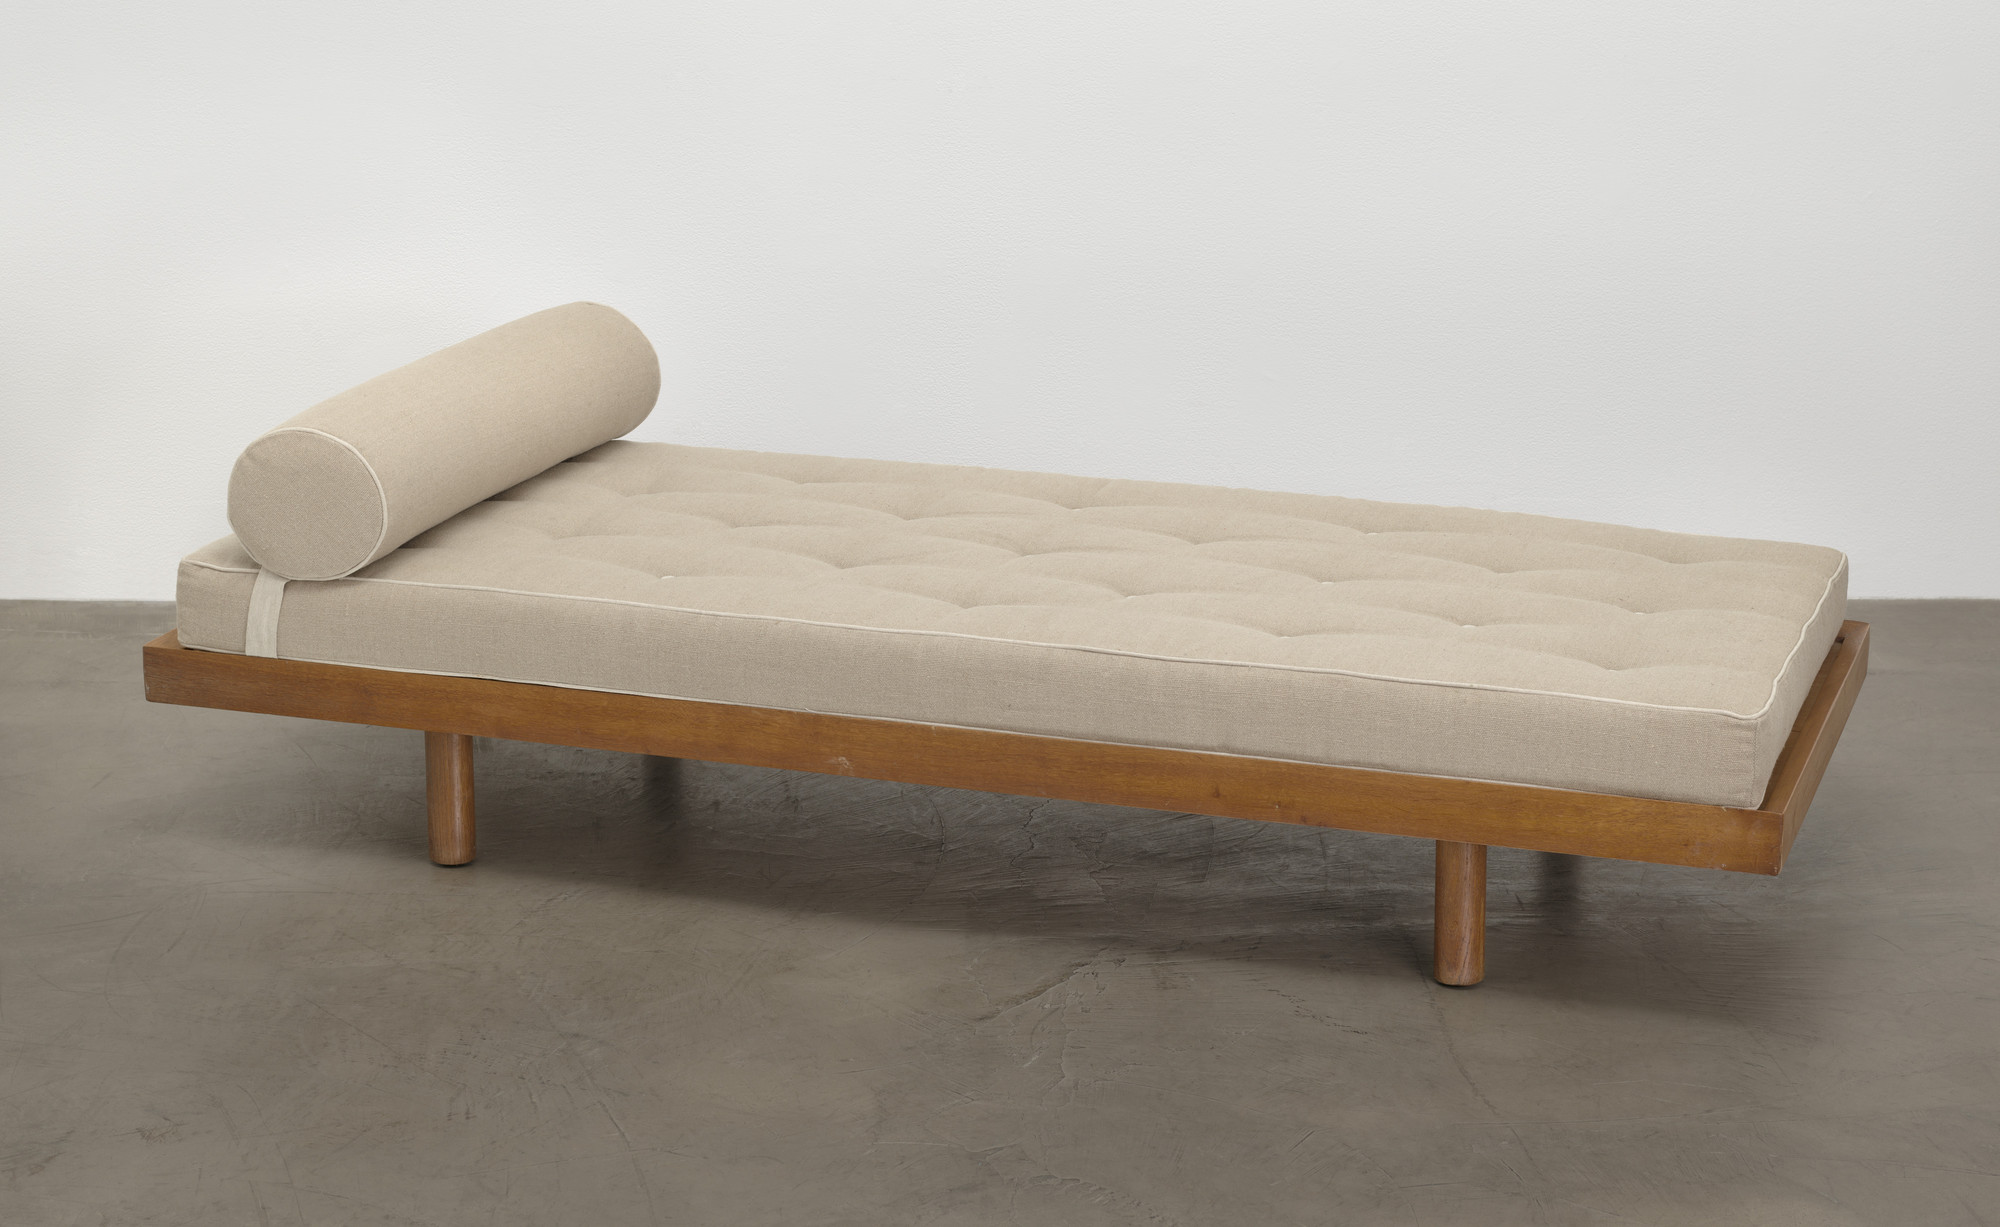 Charlotte Perriand, Le Corbusier (Charles-Édouard Jeanneret). Daybed from the Maison du Brésil. 1959